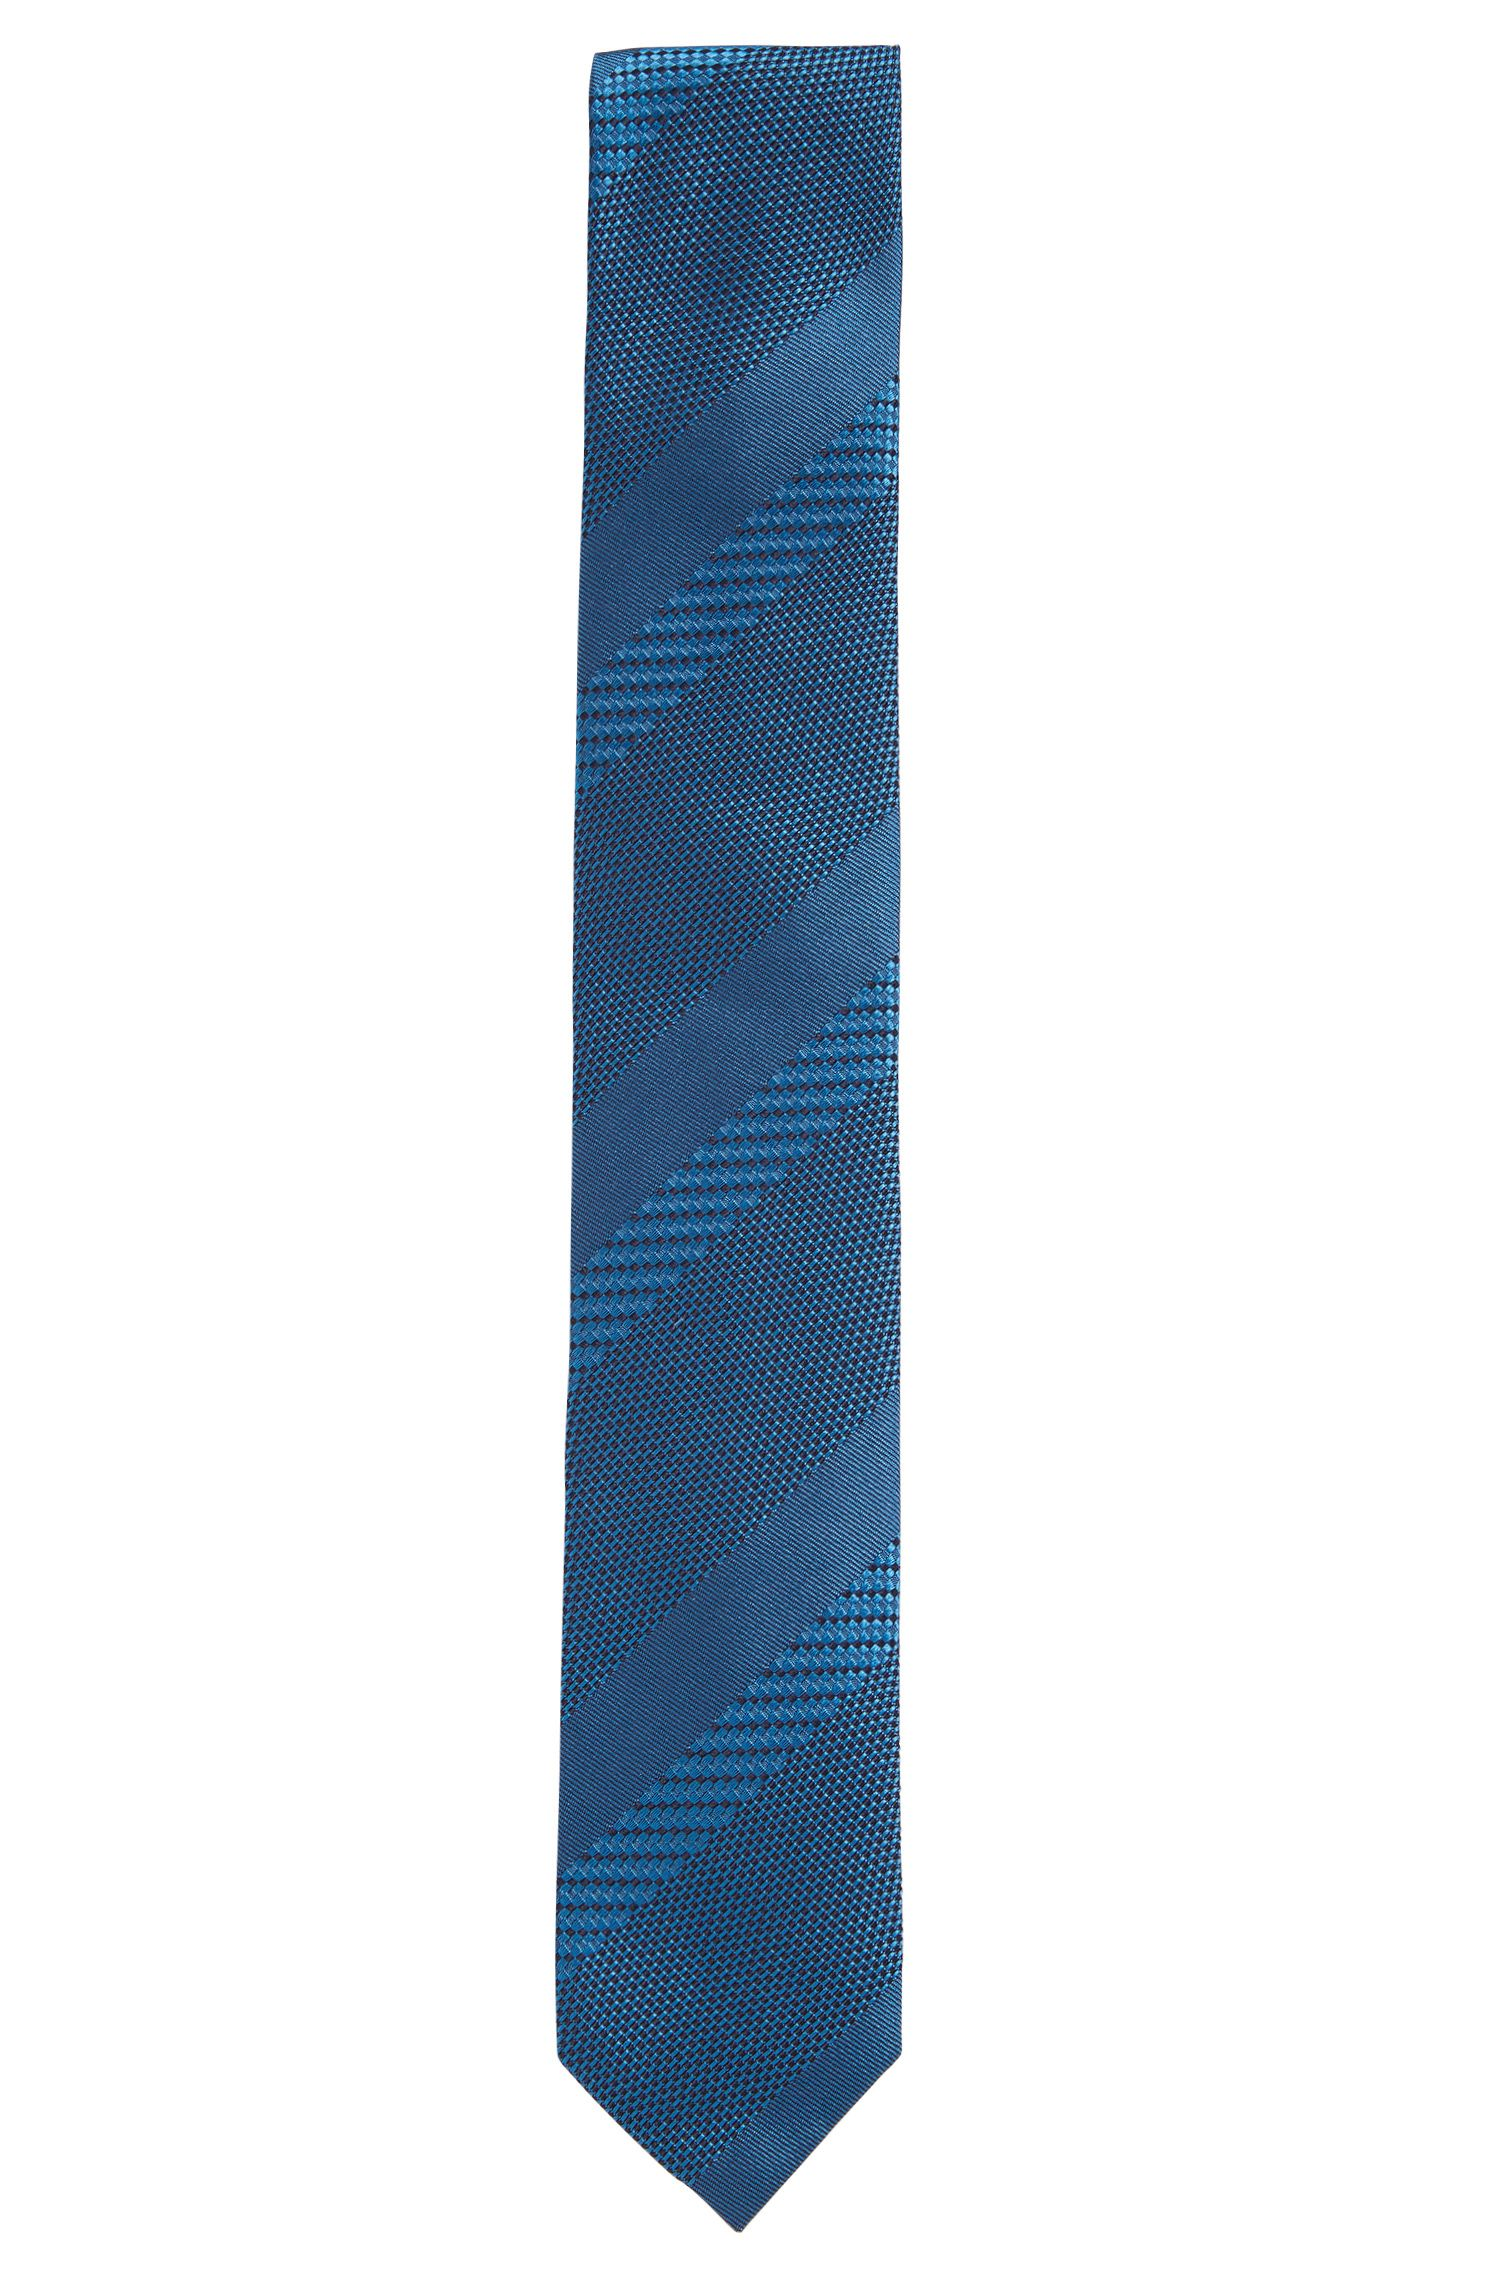 Silk jacquard tie with textured stripes